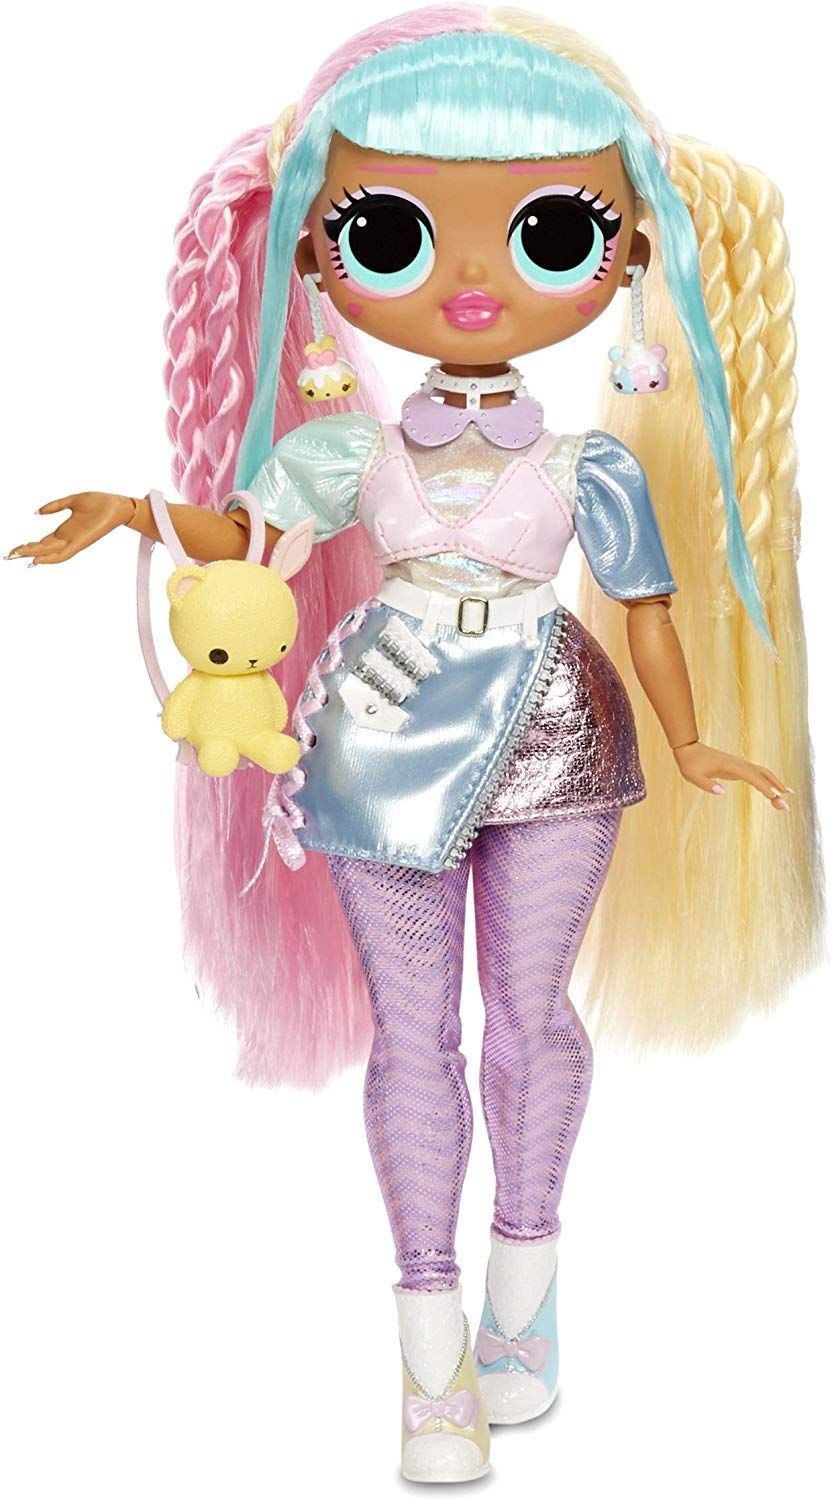 L.O.L. Surprise! O.M.G. Candylicious Fashion Doll with 20